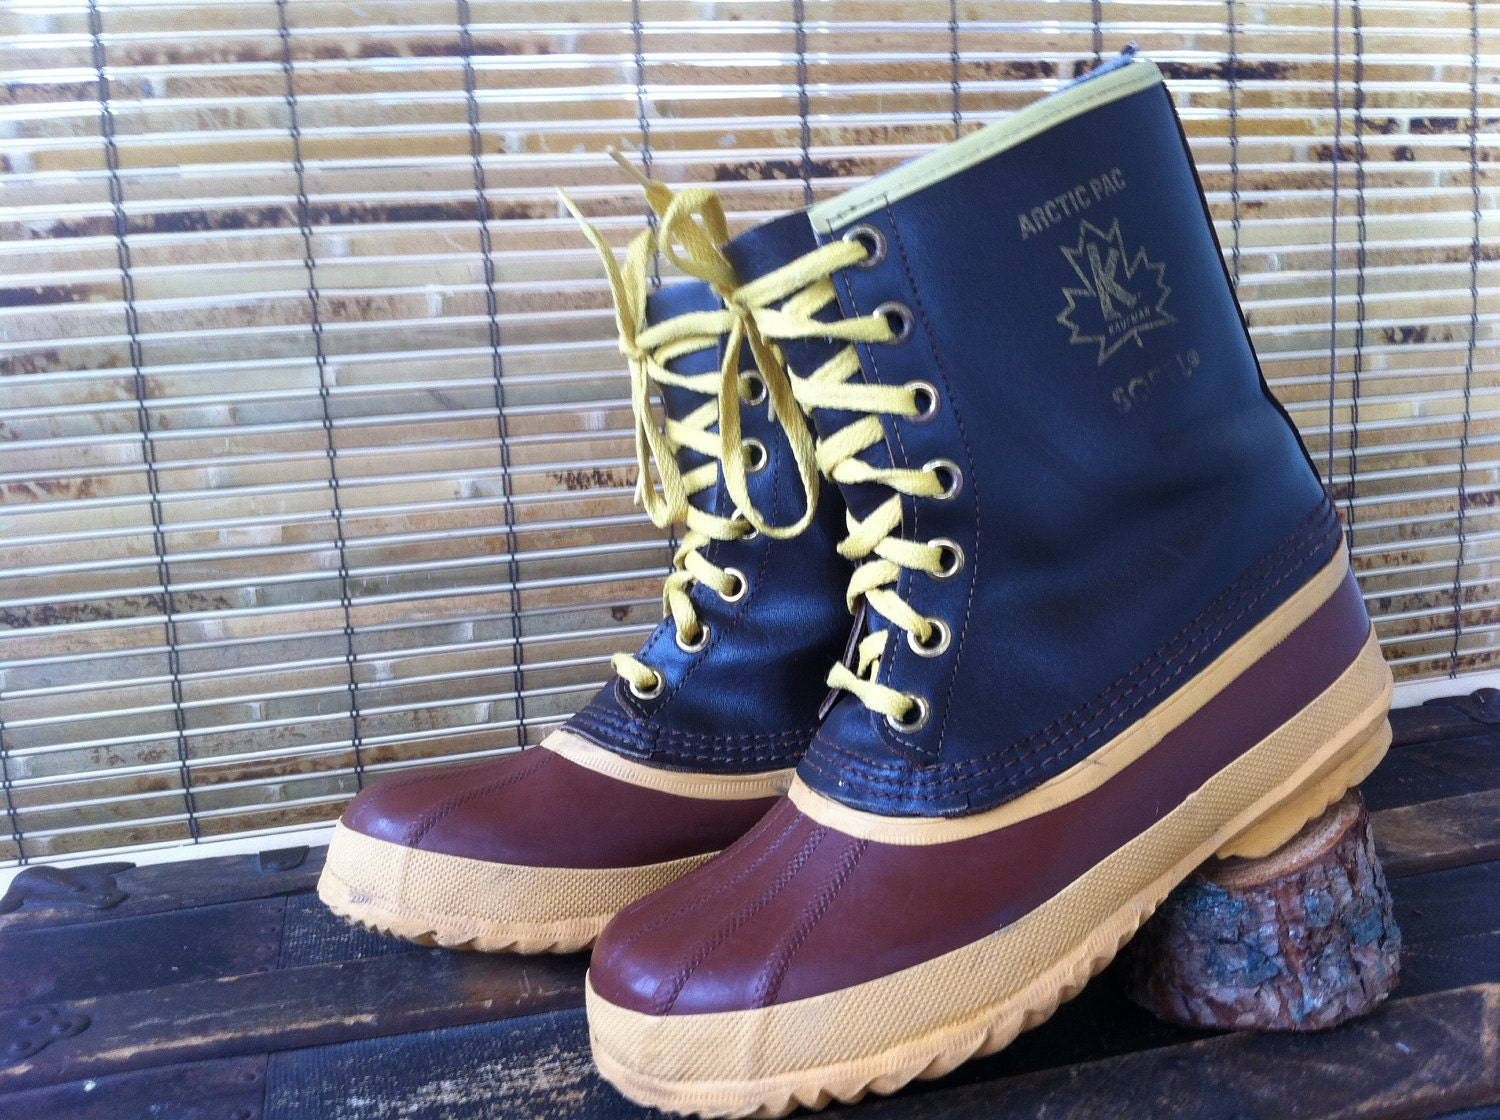 Duck boots men - photo#22